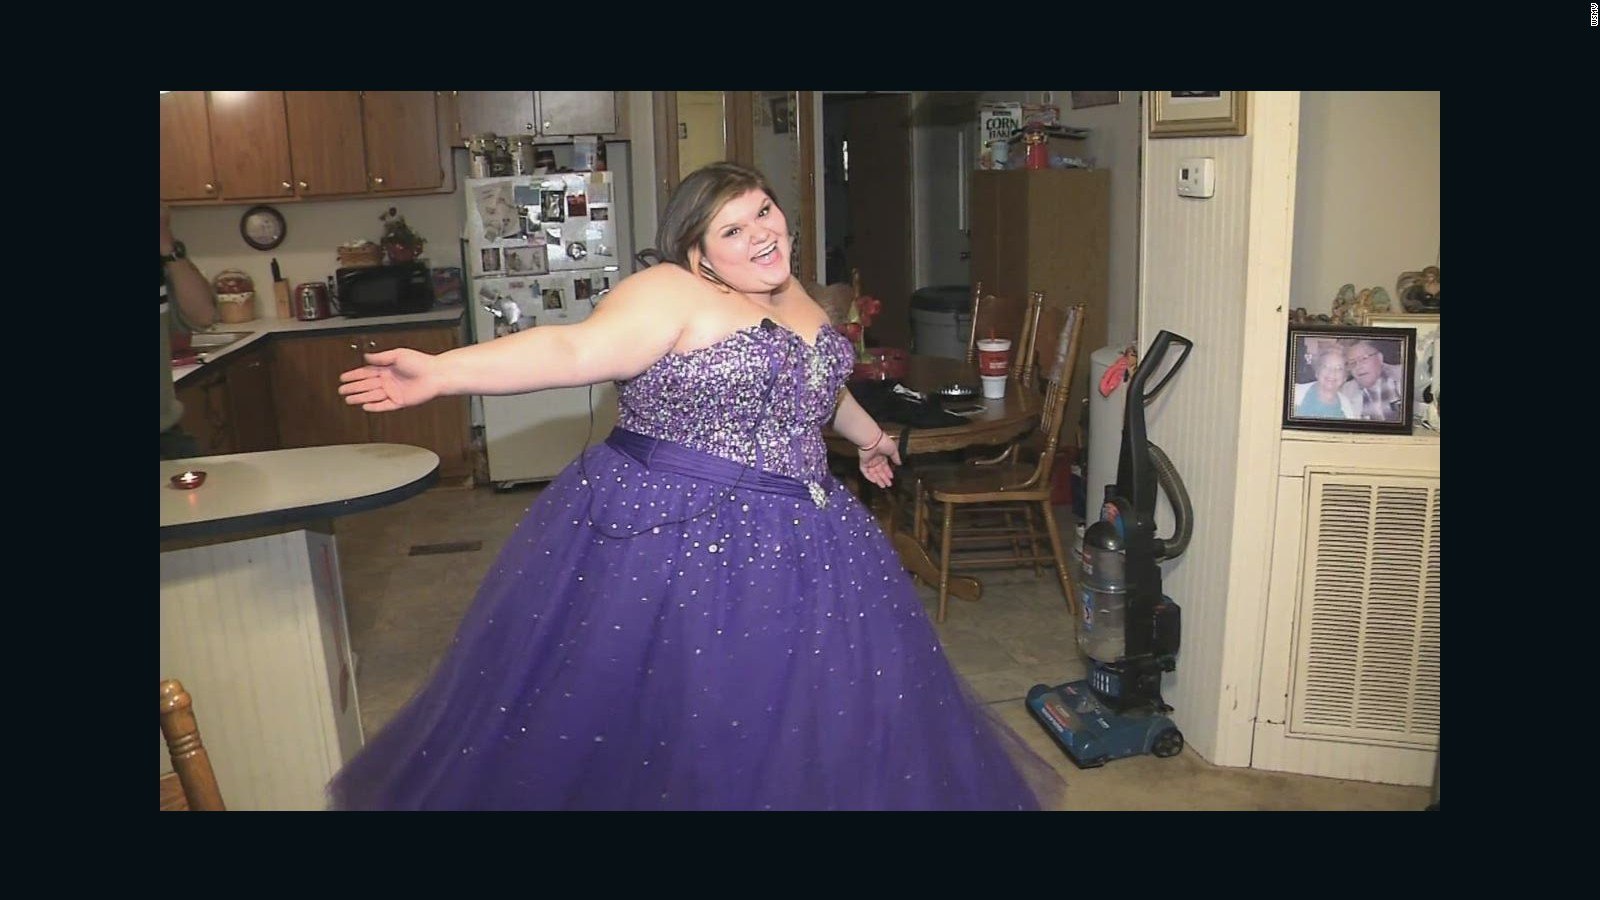 Teen Fat Shamed When She Tried To Sell Prom Dress Cnn Video